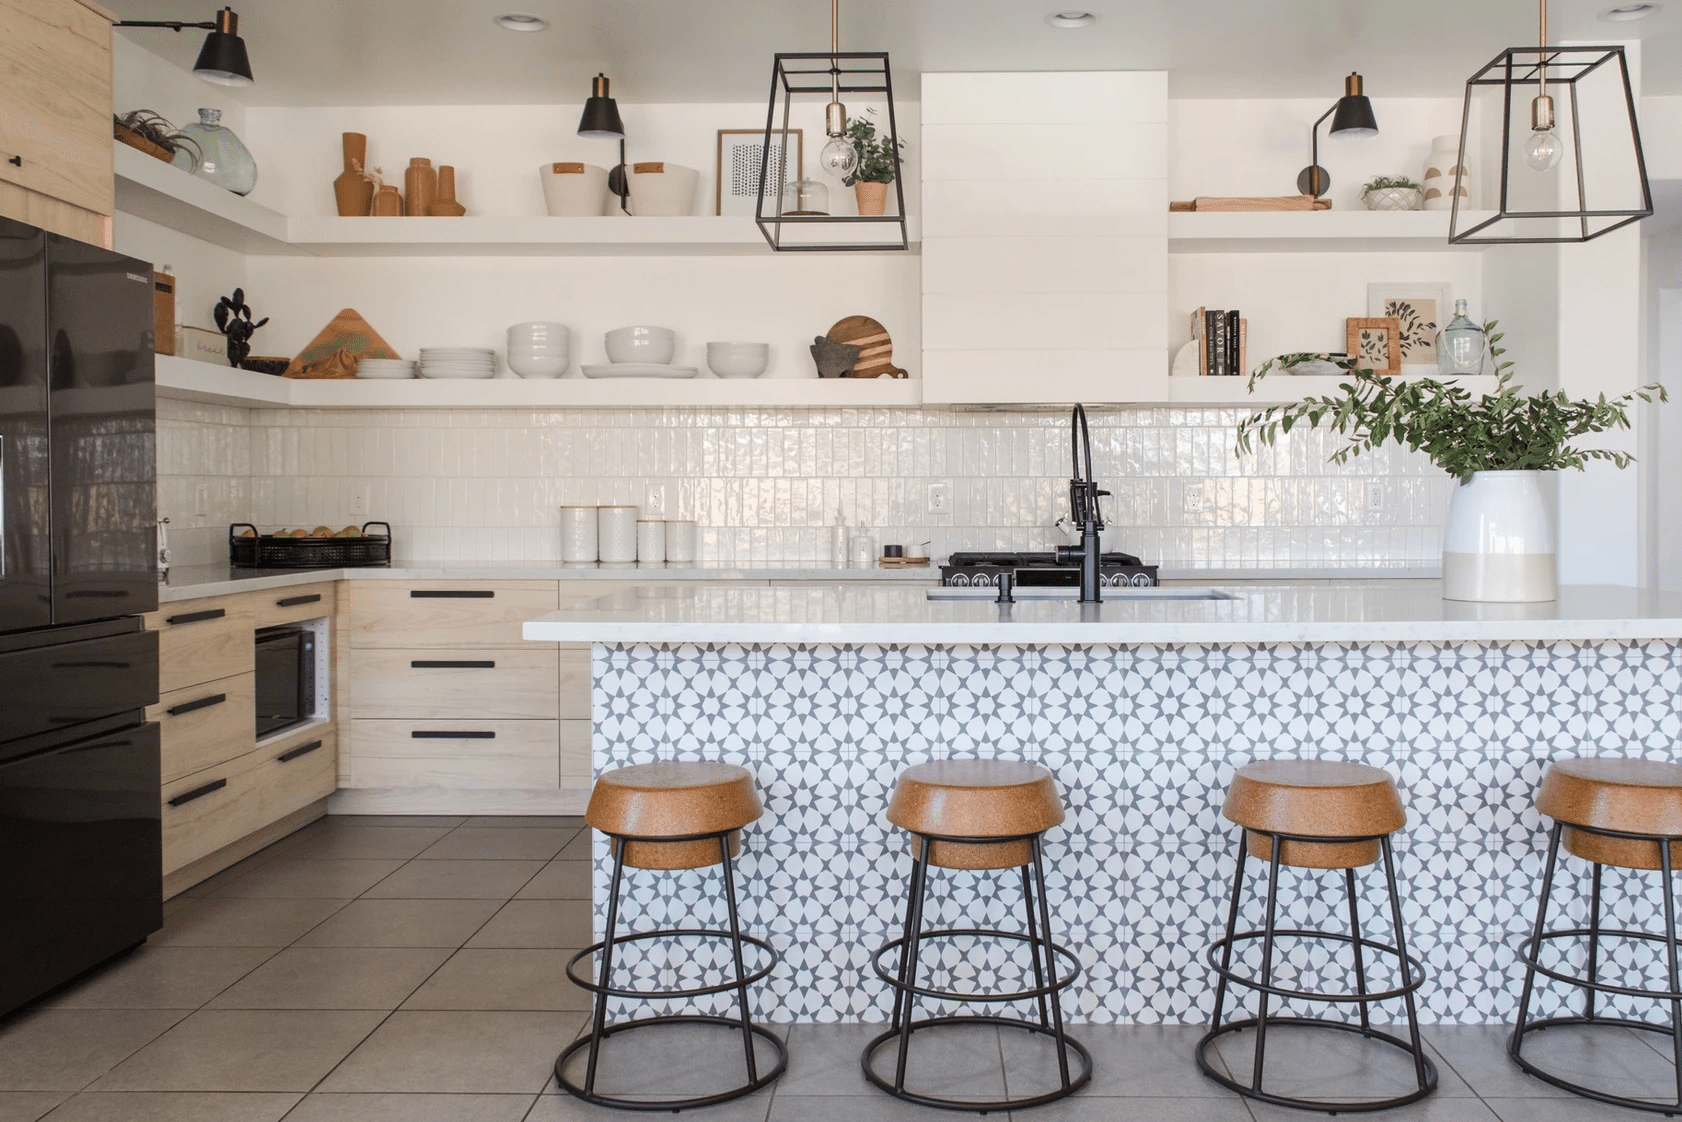 A kitchen with a backsplash lined with white tiles and a kitchen island lined with printed tiles